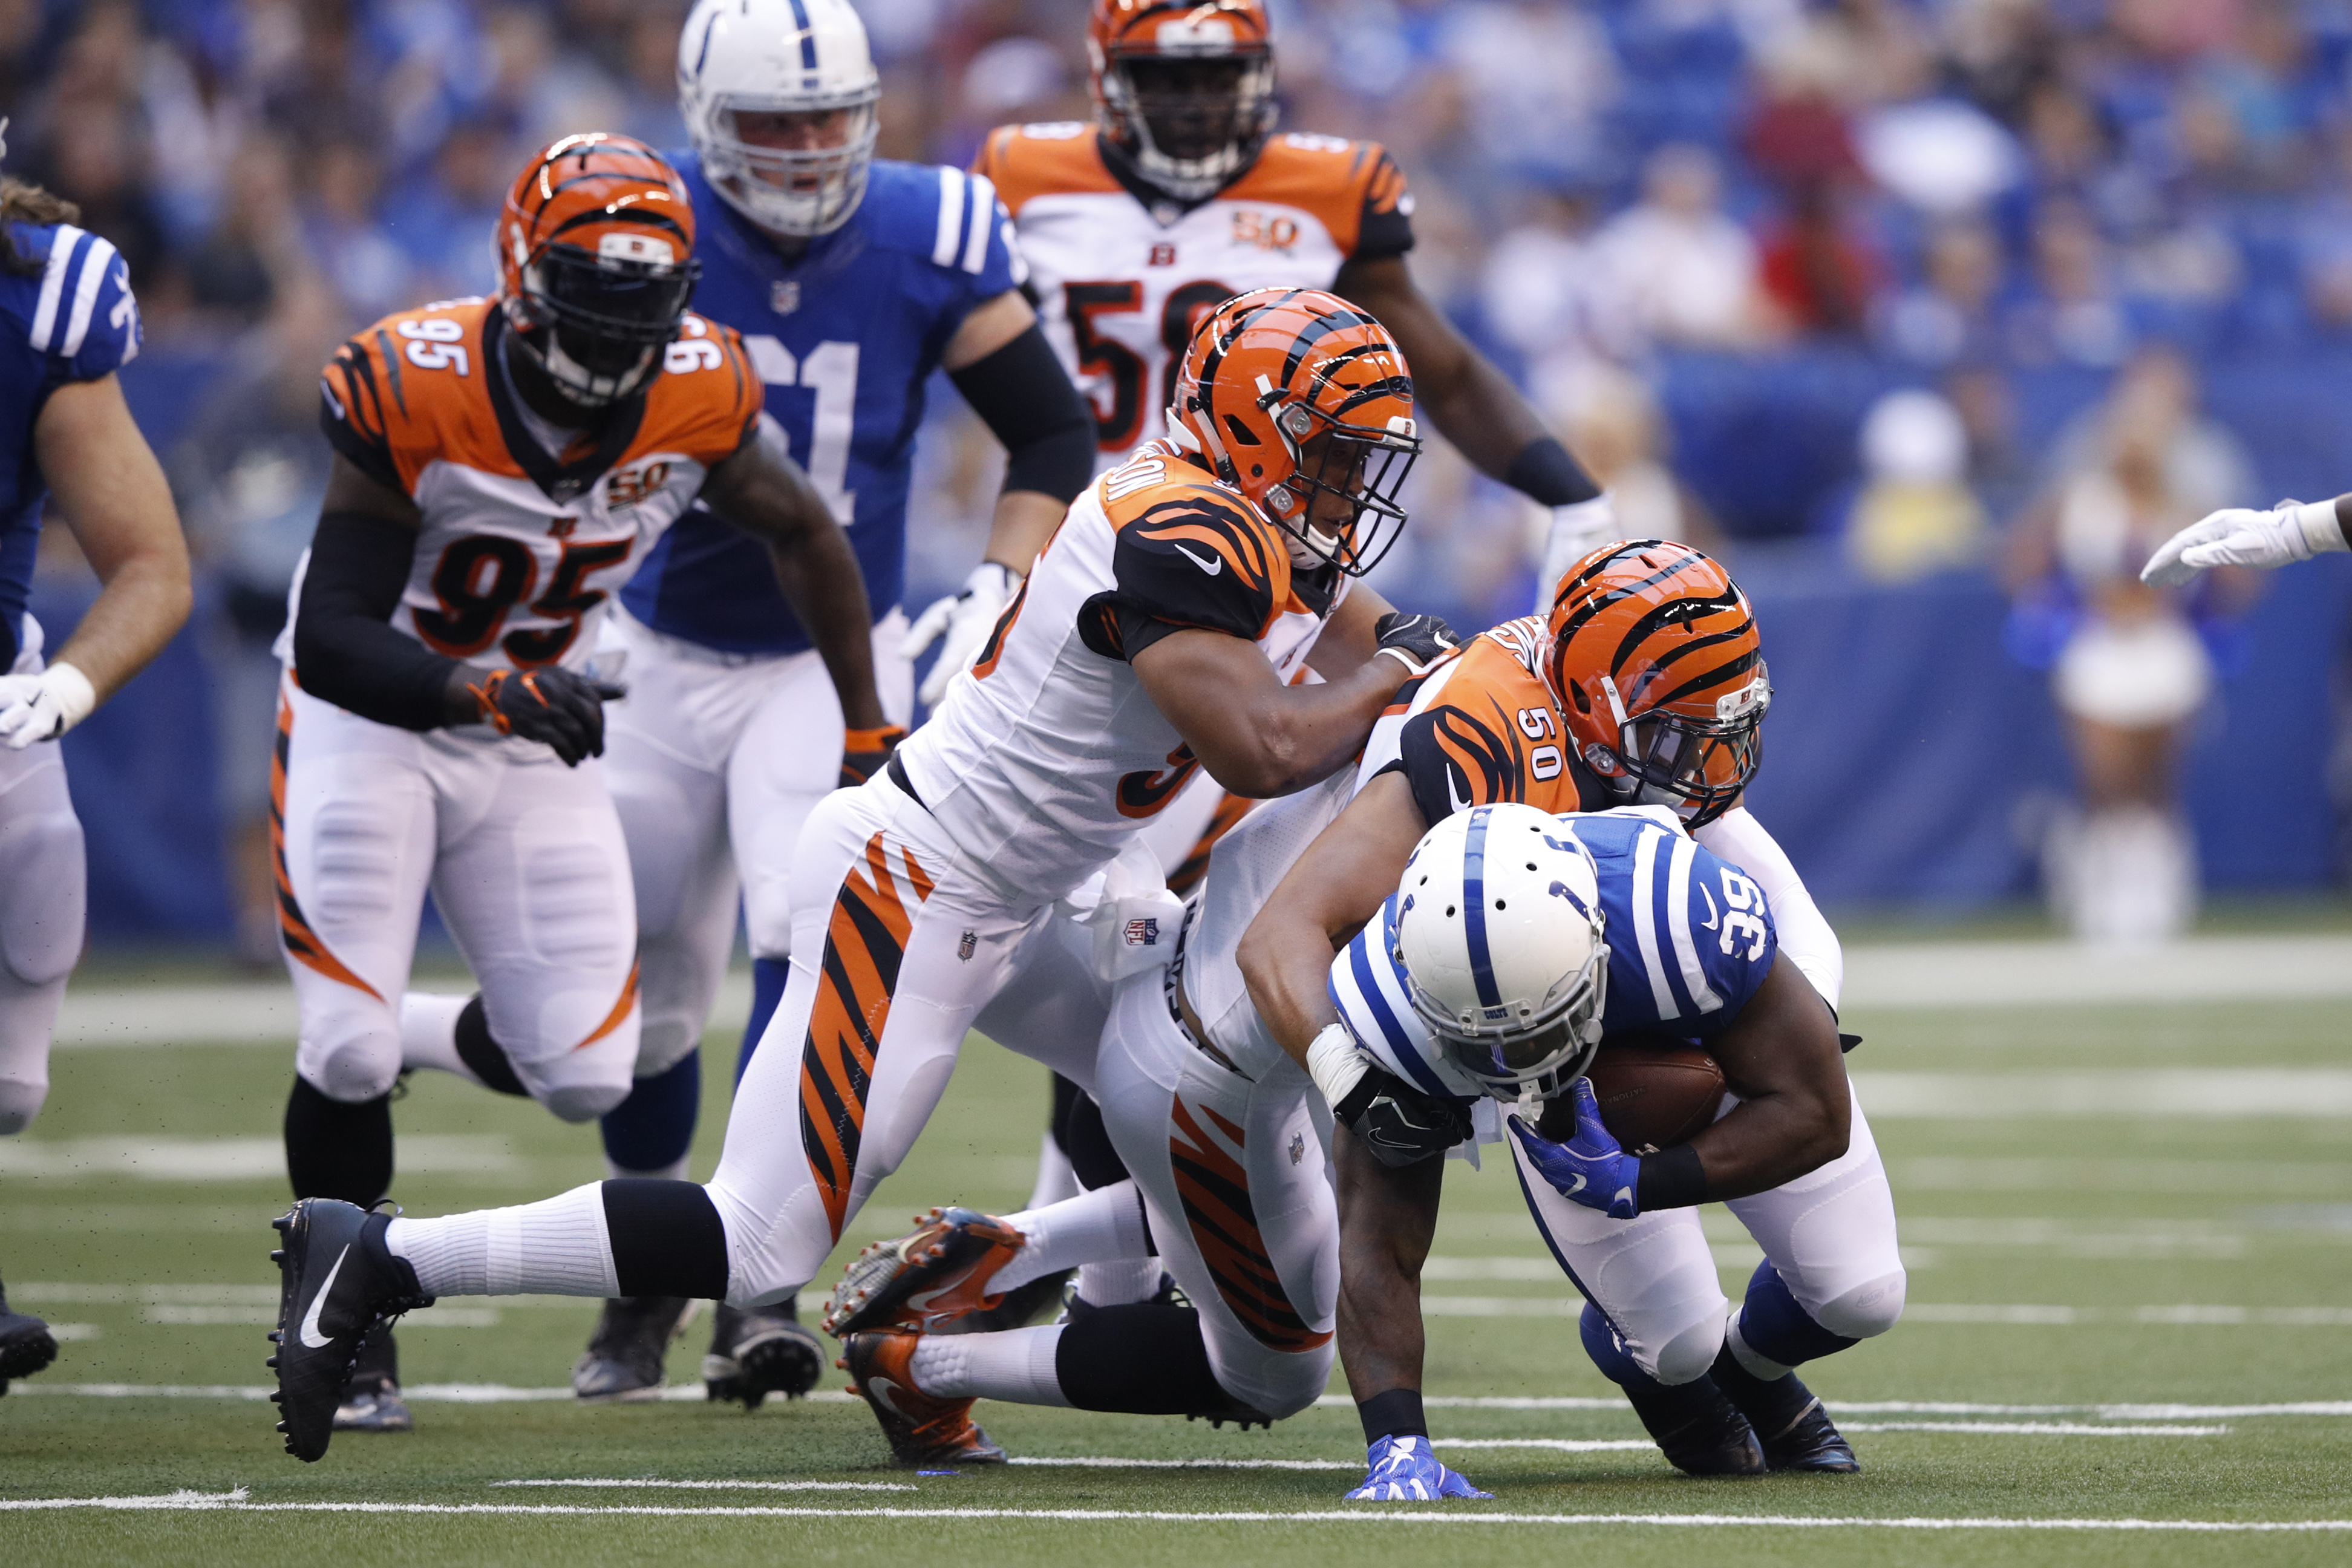 The Bengals and Colts open up the NFL season in this presason game